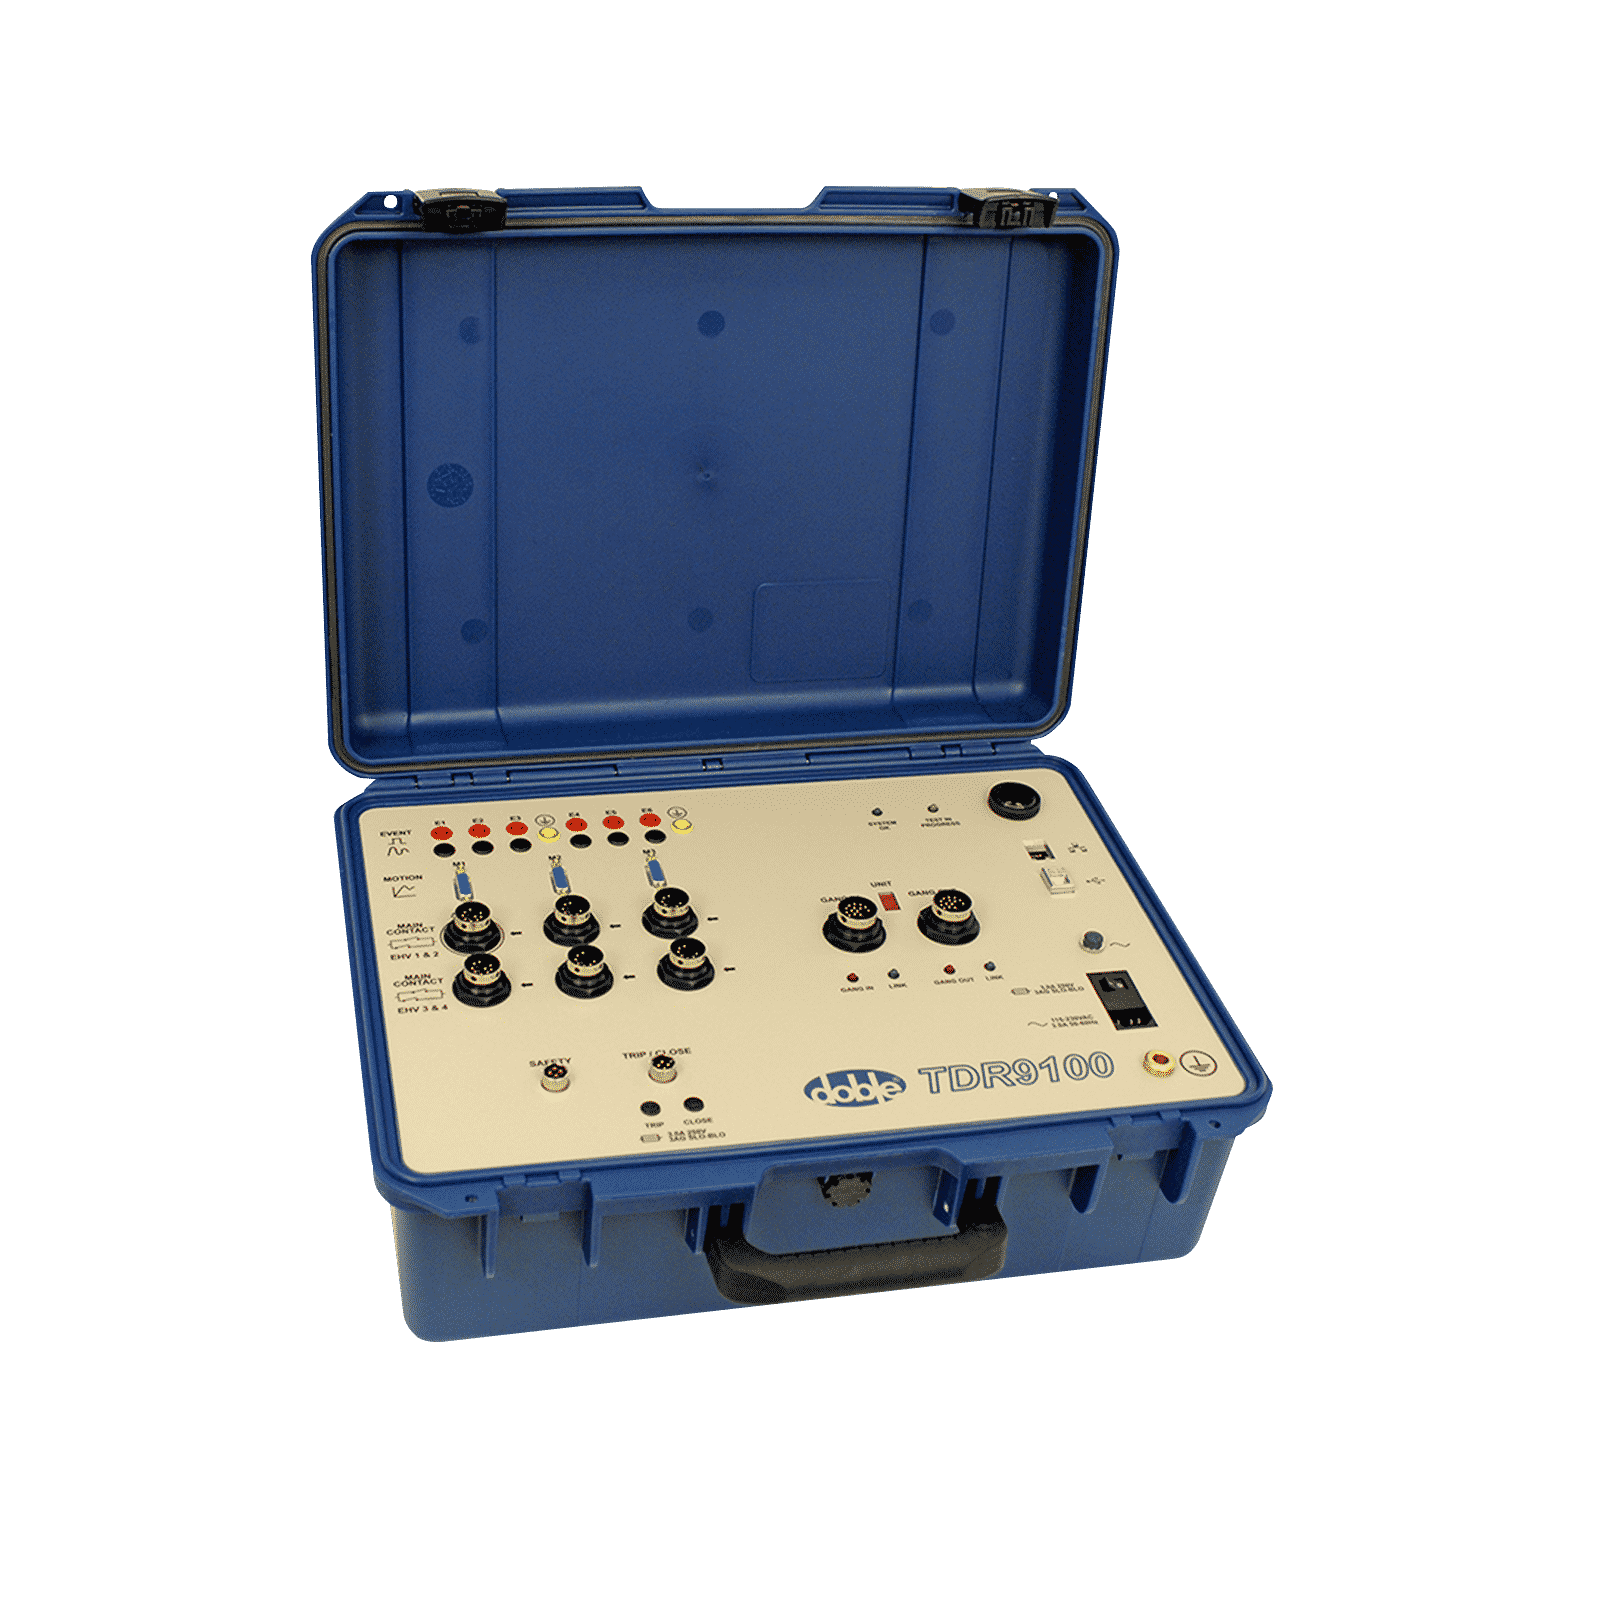 Doble Tdr9100 Circuit Breaker Analyzer Engineering Company Electrical Systems Oil Product